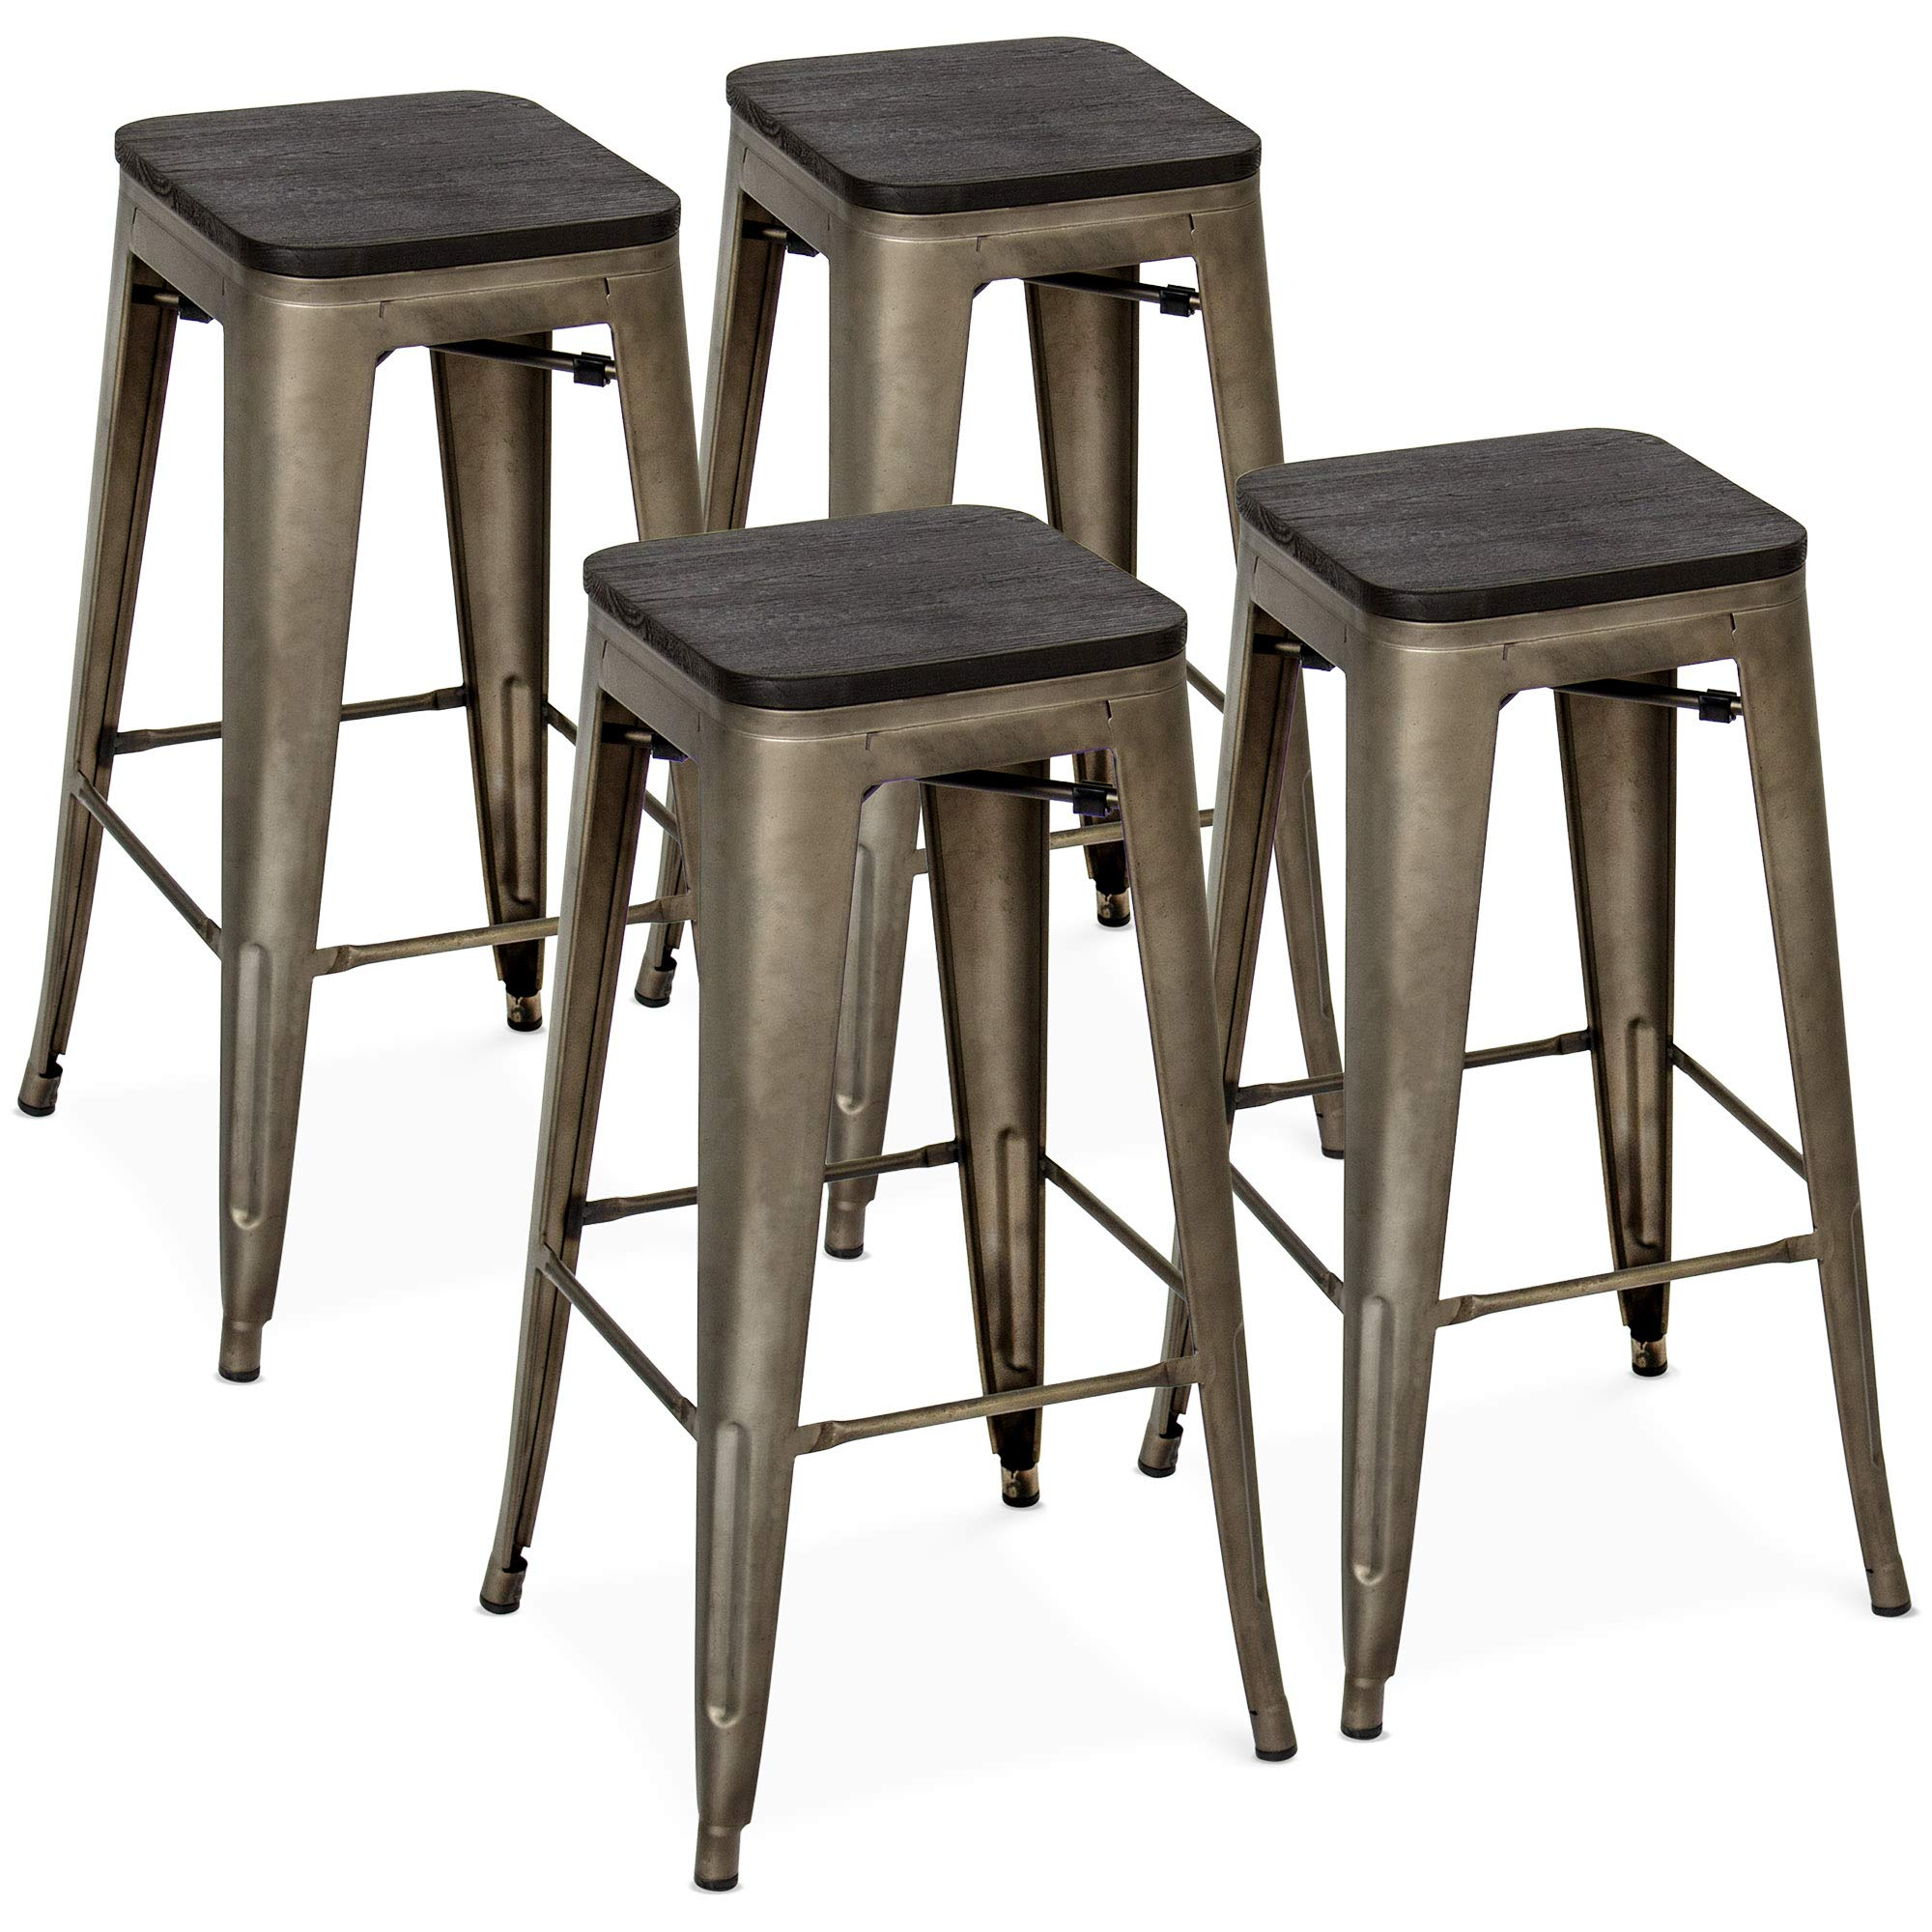 Best Choice Products Set of 4 30in Industrial Stackable Backless Steel Bar Stools w/Wood Seats - Bronze by Best Choice Products